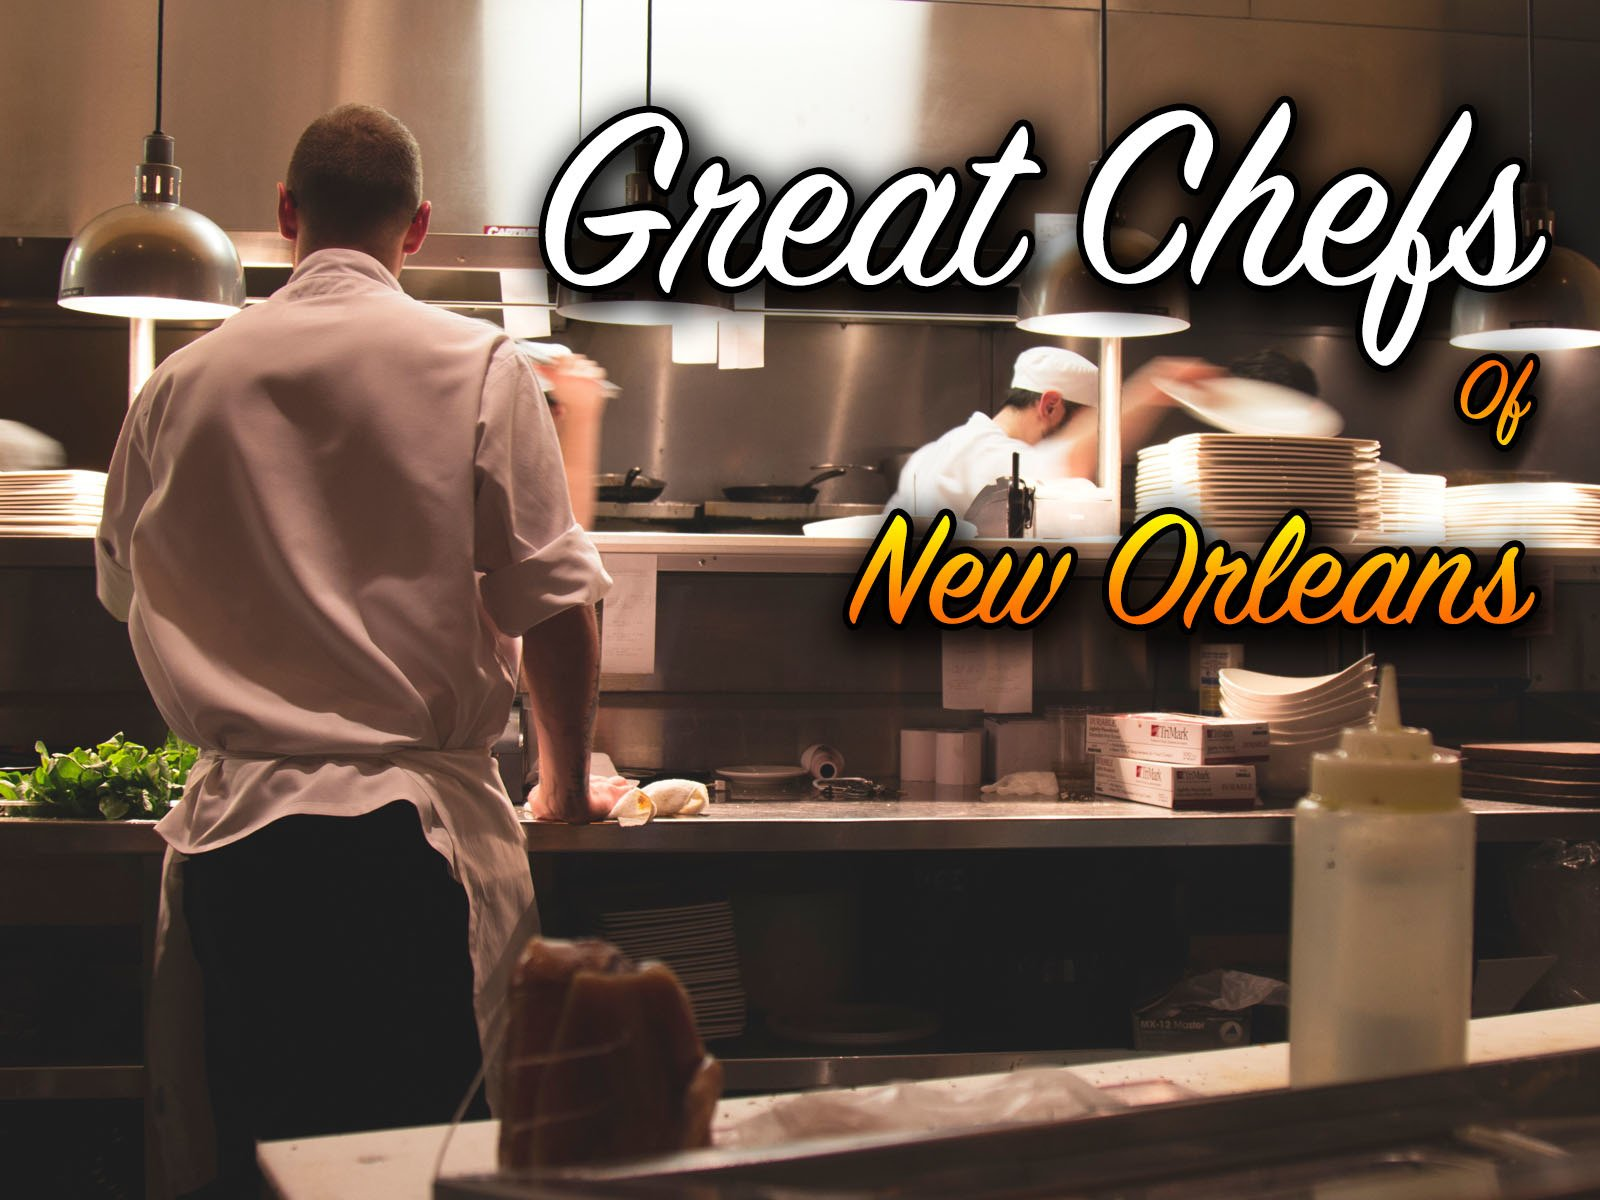 Amazon.com: Great Chefs of New Orleans: Dave Landry, John Shoup ...